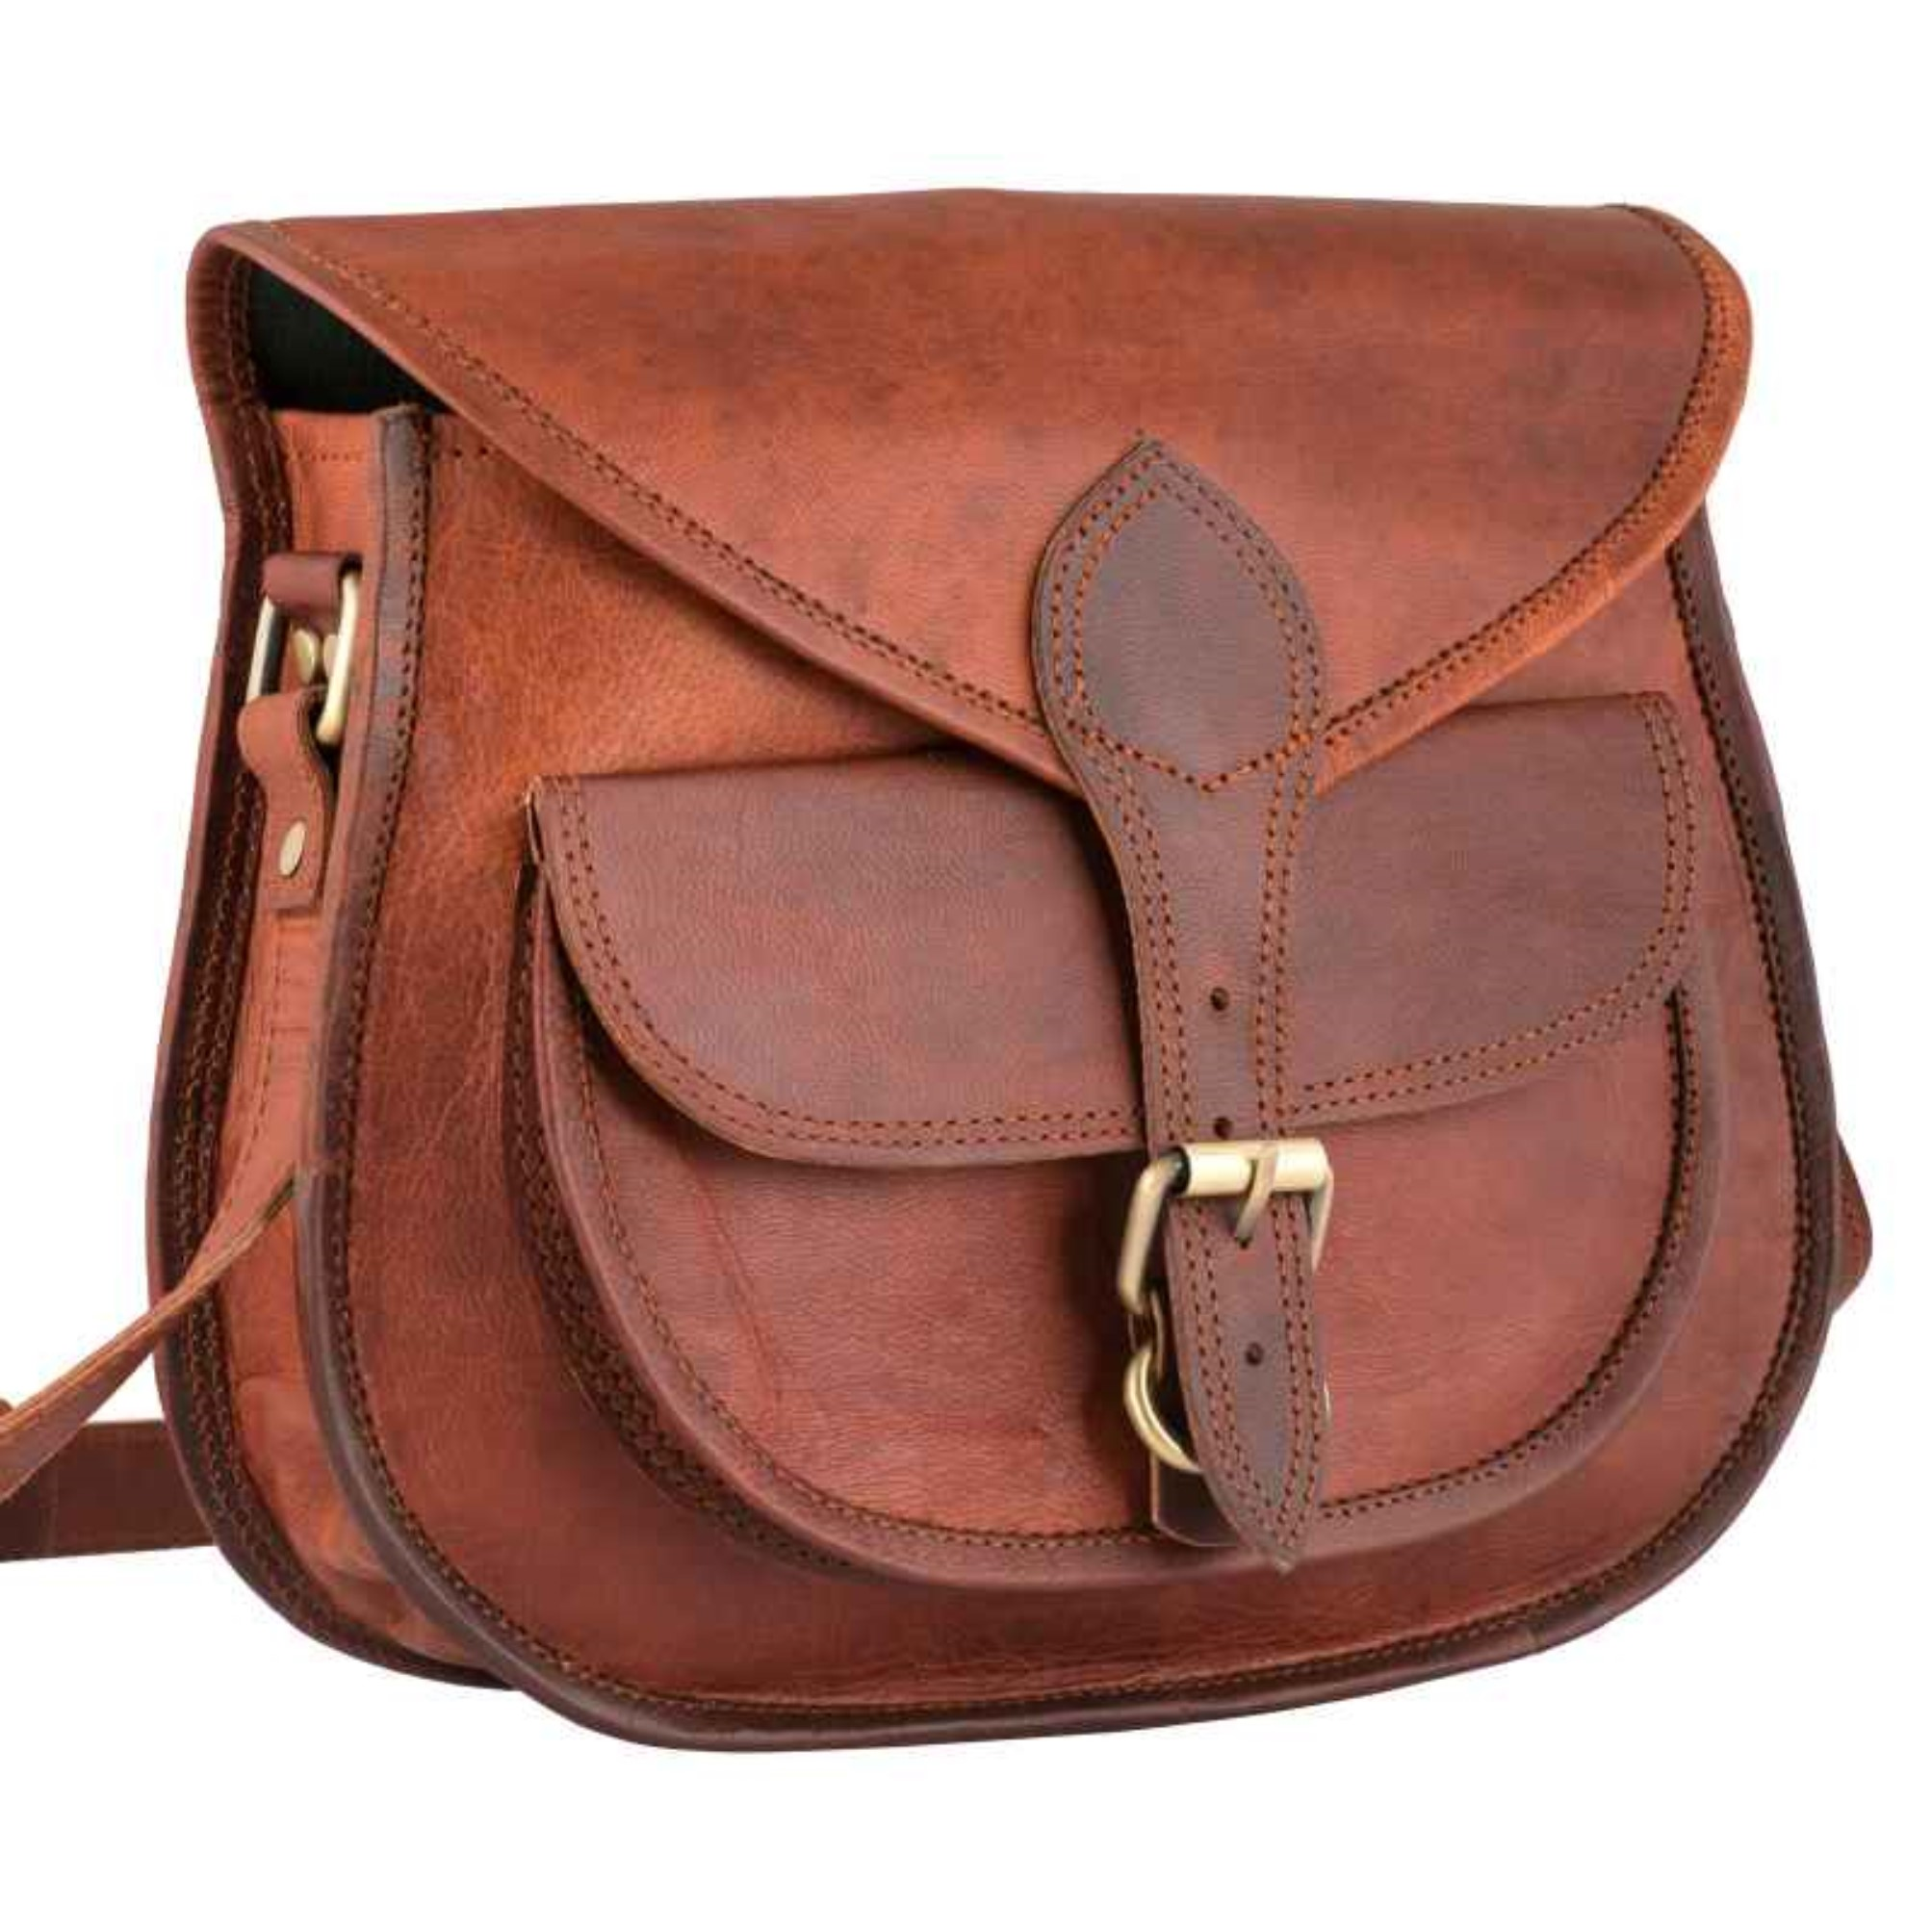 4369228da74b Zibag Leather Handbags And Ladies Purse Vintage Leather Women Shoulder Bag  - Buy Women Leather Bag,Leather Bag Women,Leather Shoulder Bag Product on  ...